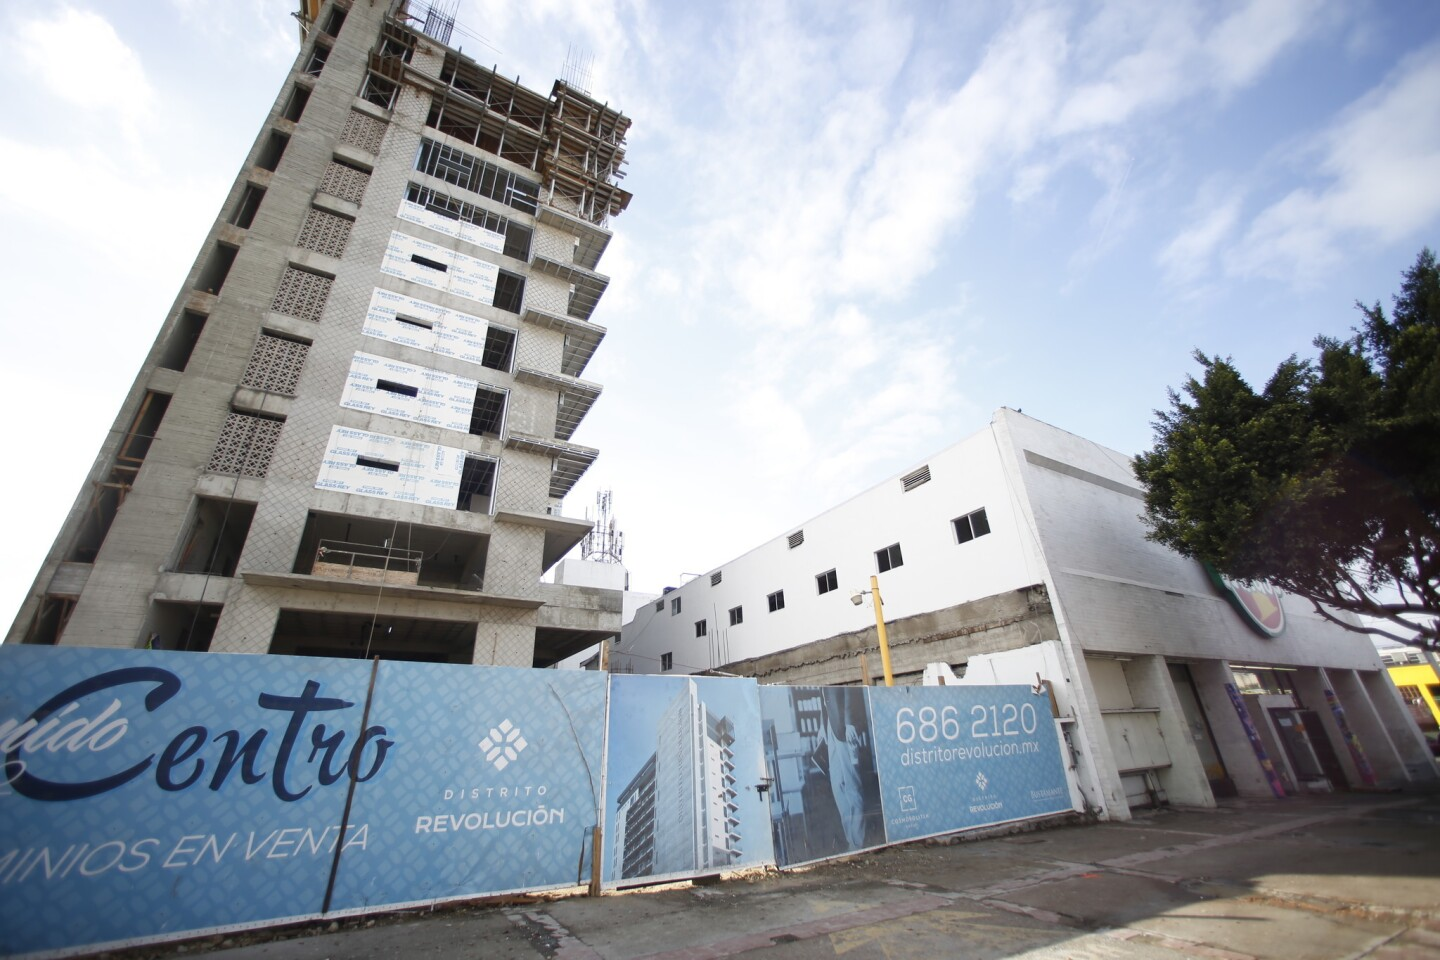 Tijuana will have roughly 500 new condos coming on market in 2018 that average around $200,000 to $300,000. Prices are affordable compared to San Diego County, but aimed mainly at affluent Mexicans. Crime, currency woes and competition among builders has not slowed increased construction that started in two and a half years. All prices are in U.S. dollars.